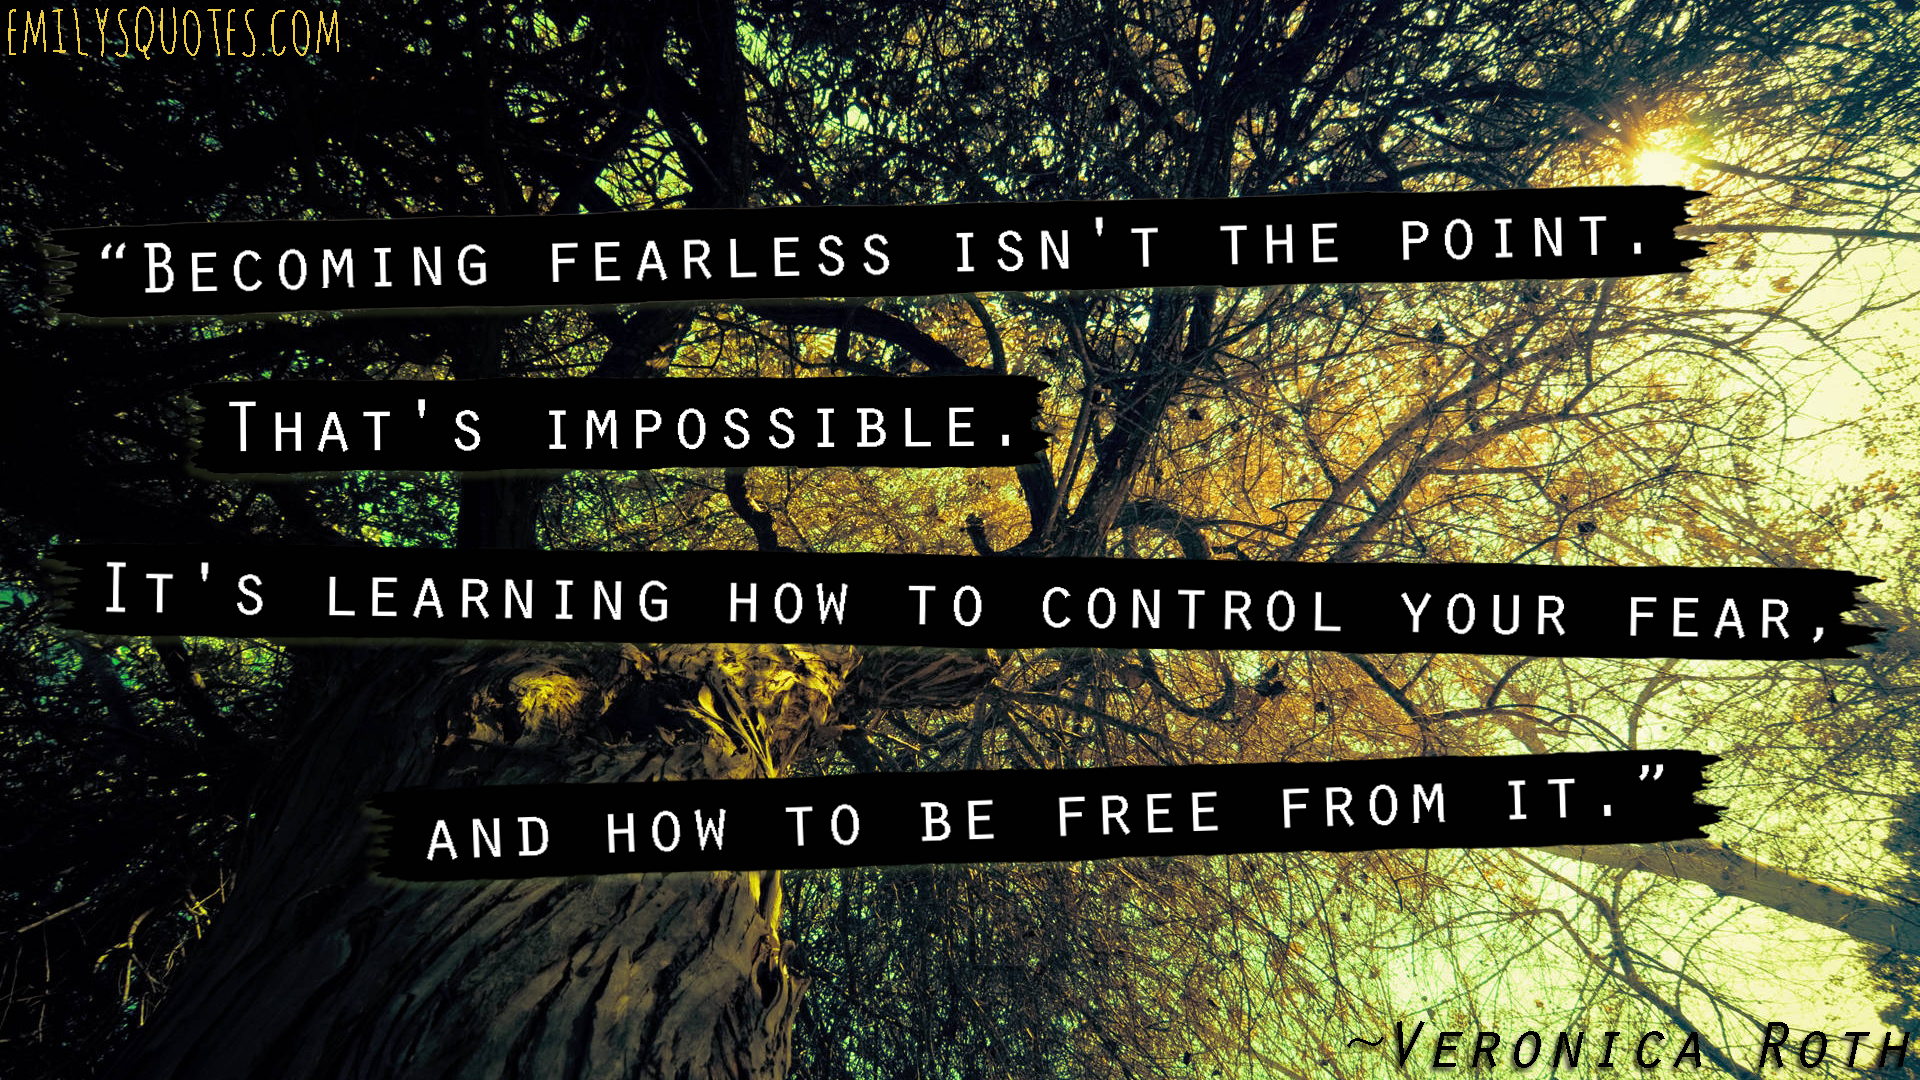 EmilysQuotes.Com - fearless, learning, control fear, freedom, isnpirational,  Veronica Roth